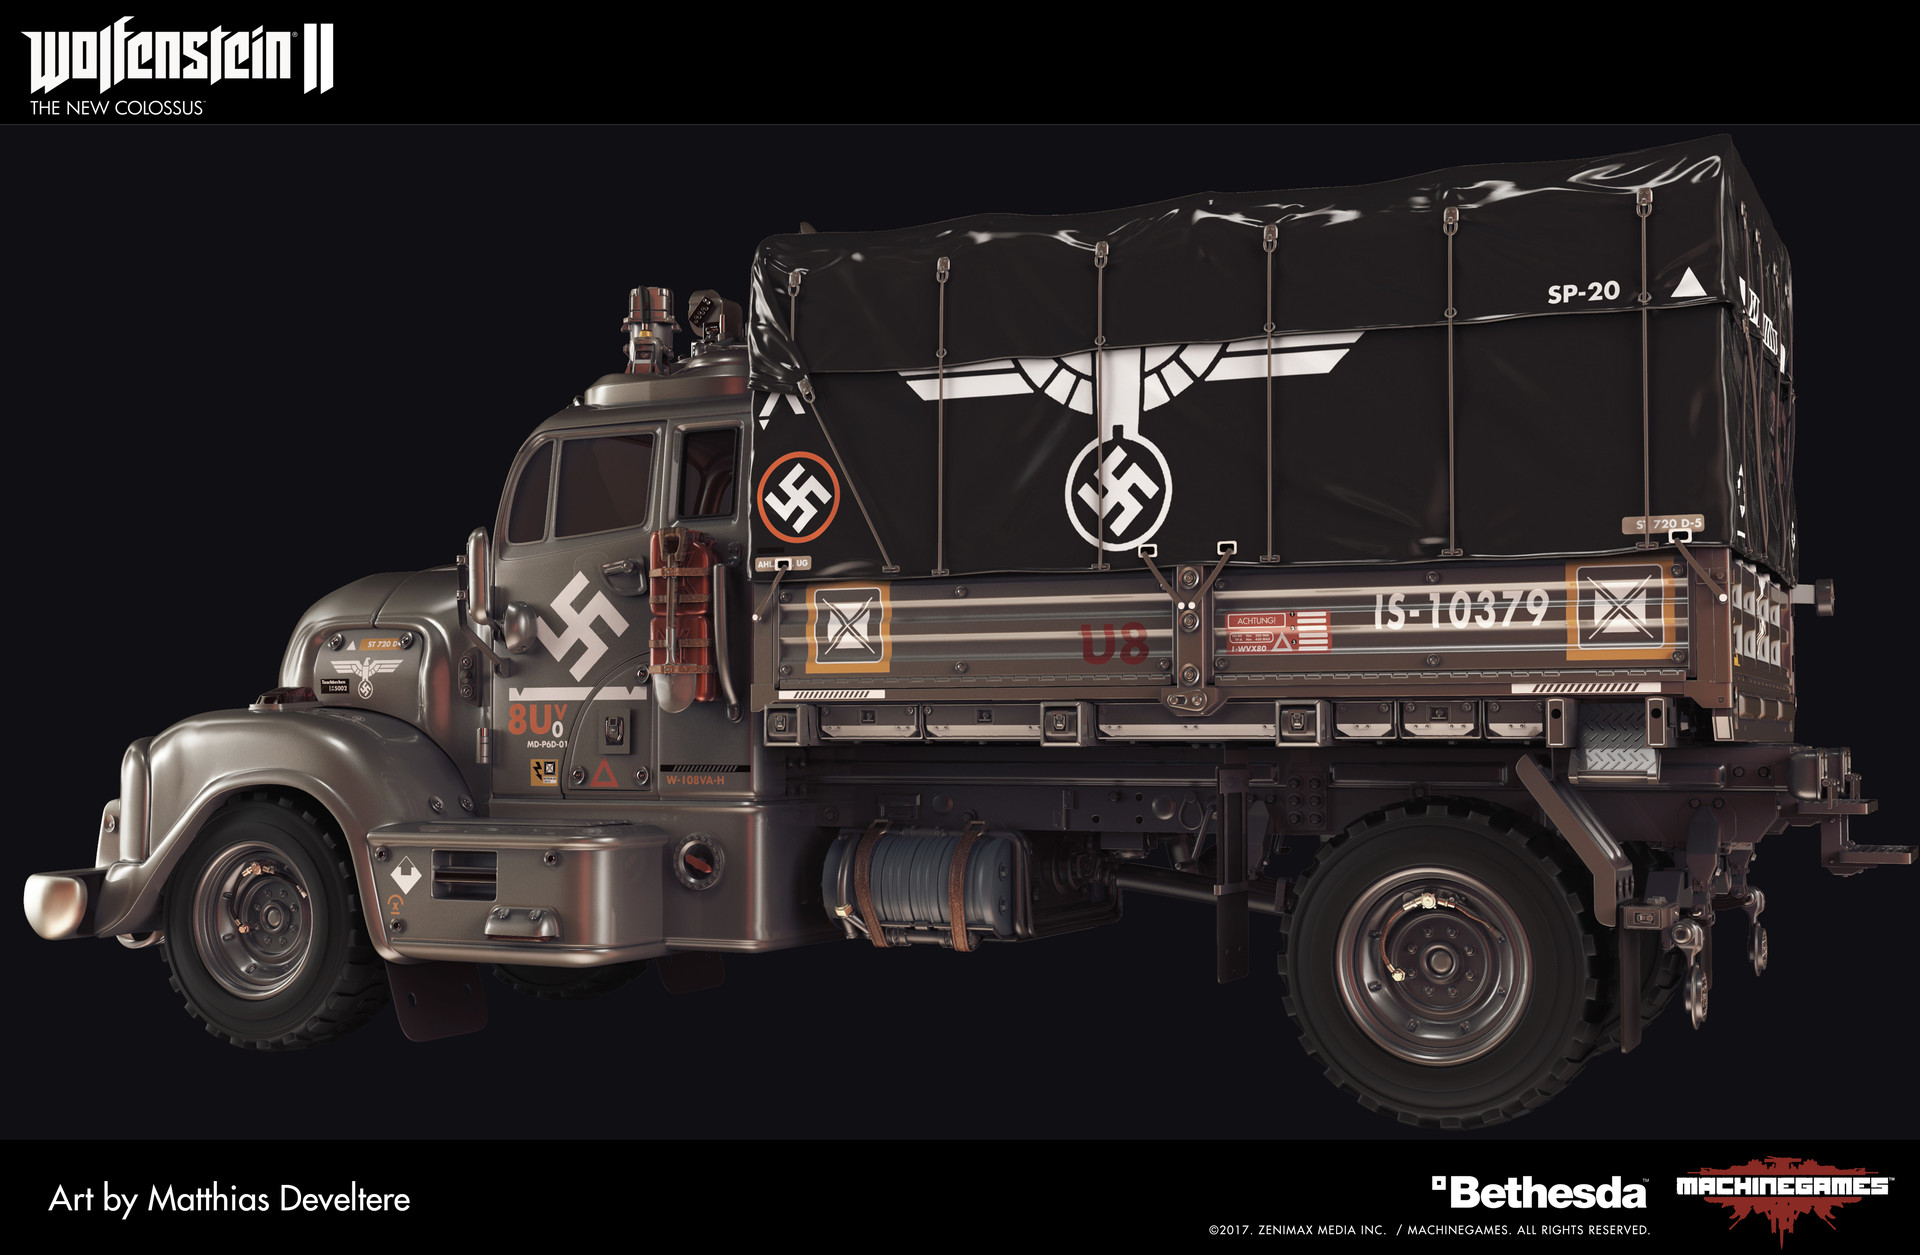 Matthias develtere militairytrucks 1